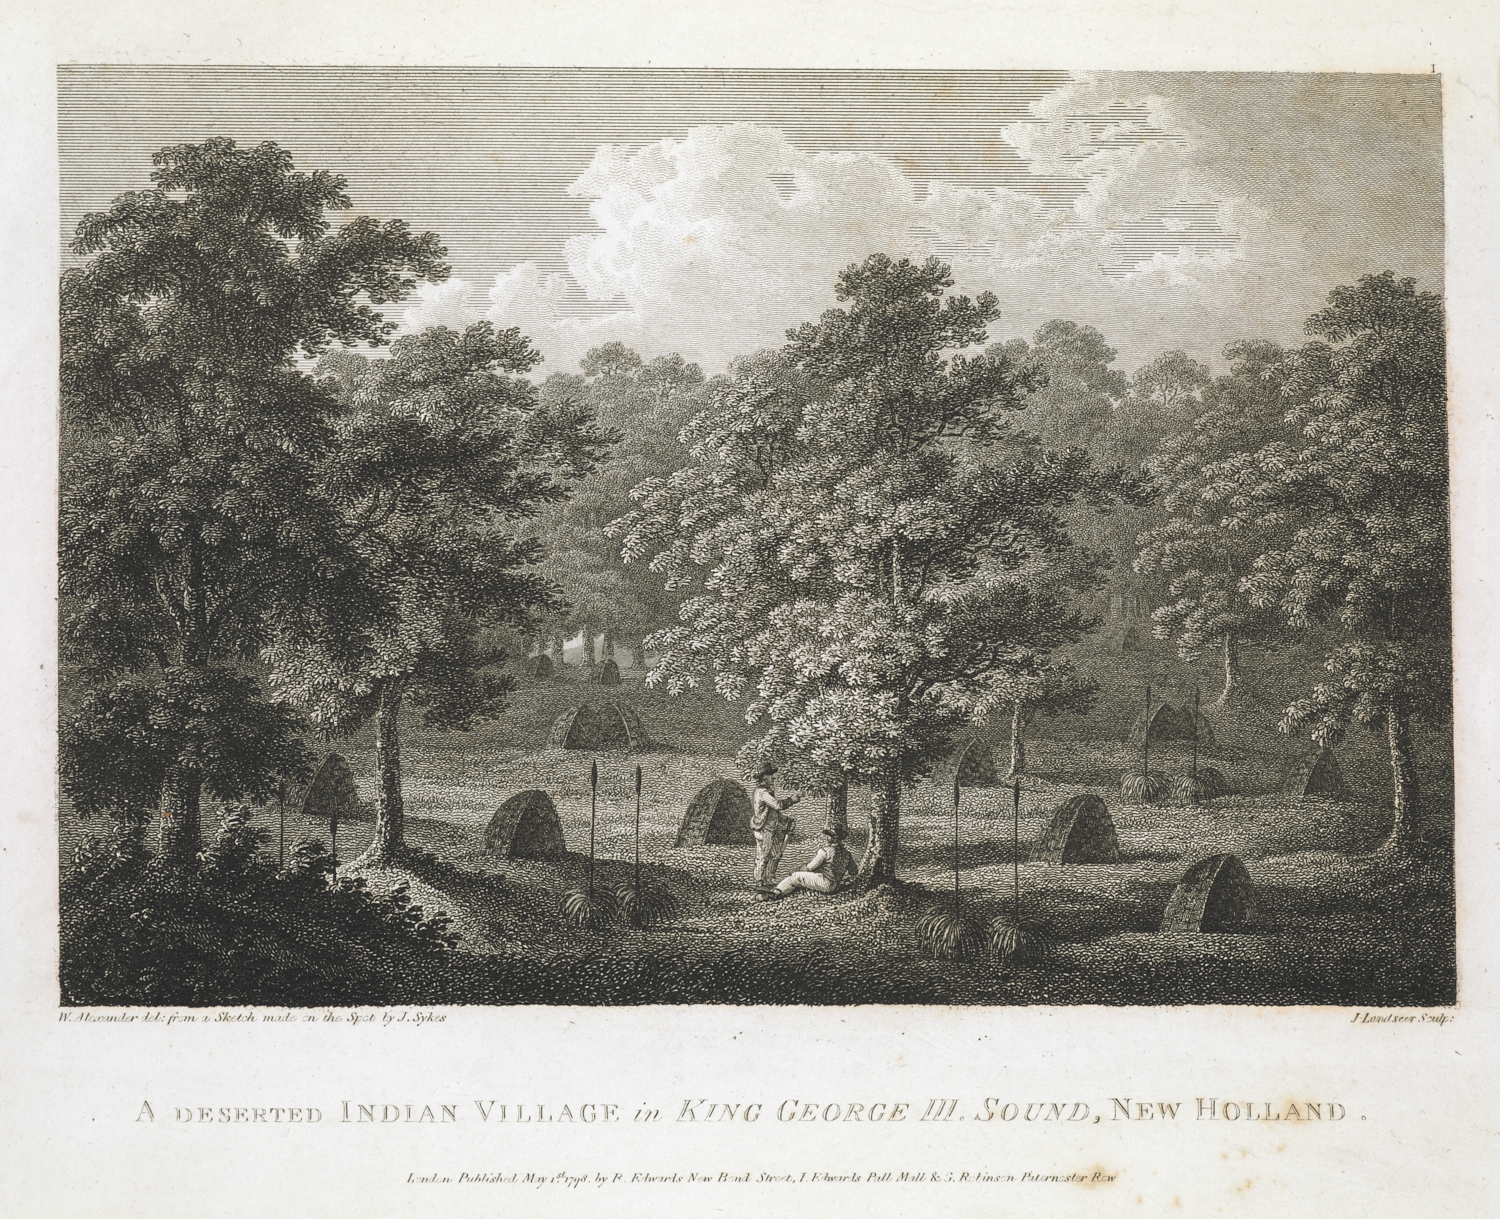 John Landseer (1769–1852) after William Alexander (1767–1816) and John Sykes (1781/2–1837), A Deserted Indian Village in King George III Sound, New Holland, published 1 May 1798 by Richard Edwards, New Bond Street, John Edwards, Pall Mall, and George Robinson, Pater Noster Row, London, etching and engraving, republished in George Vancouver (1757-98), A Voyage of Discovery to the North Pacific Ocean (London: G.G. Robinson & J Edwards, 1798), 688.l.1.